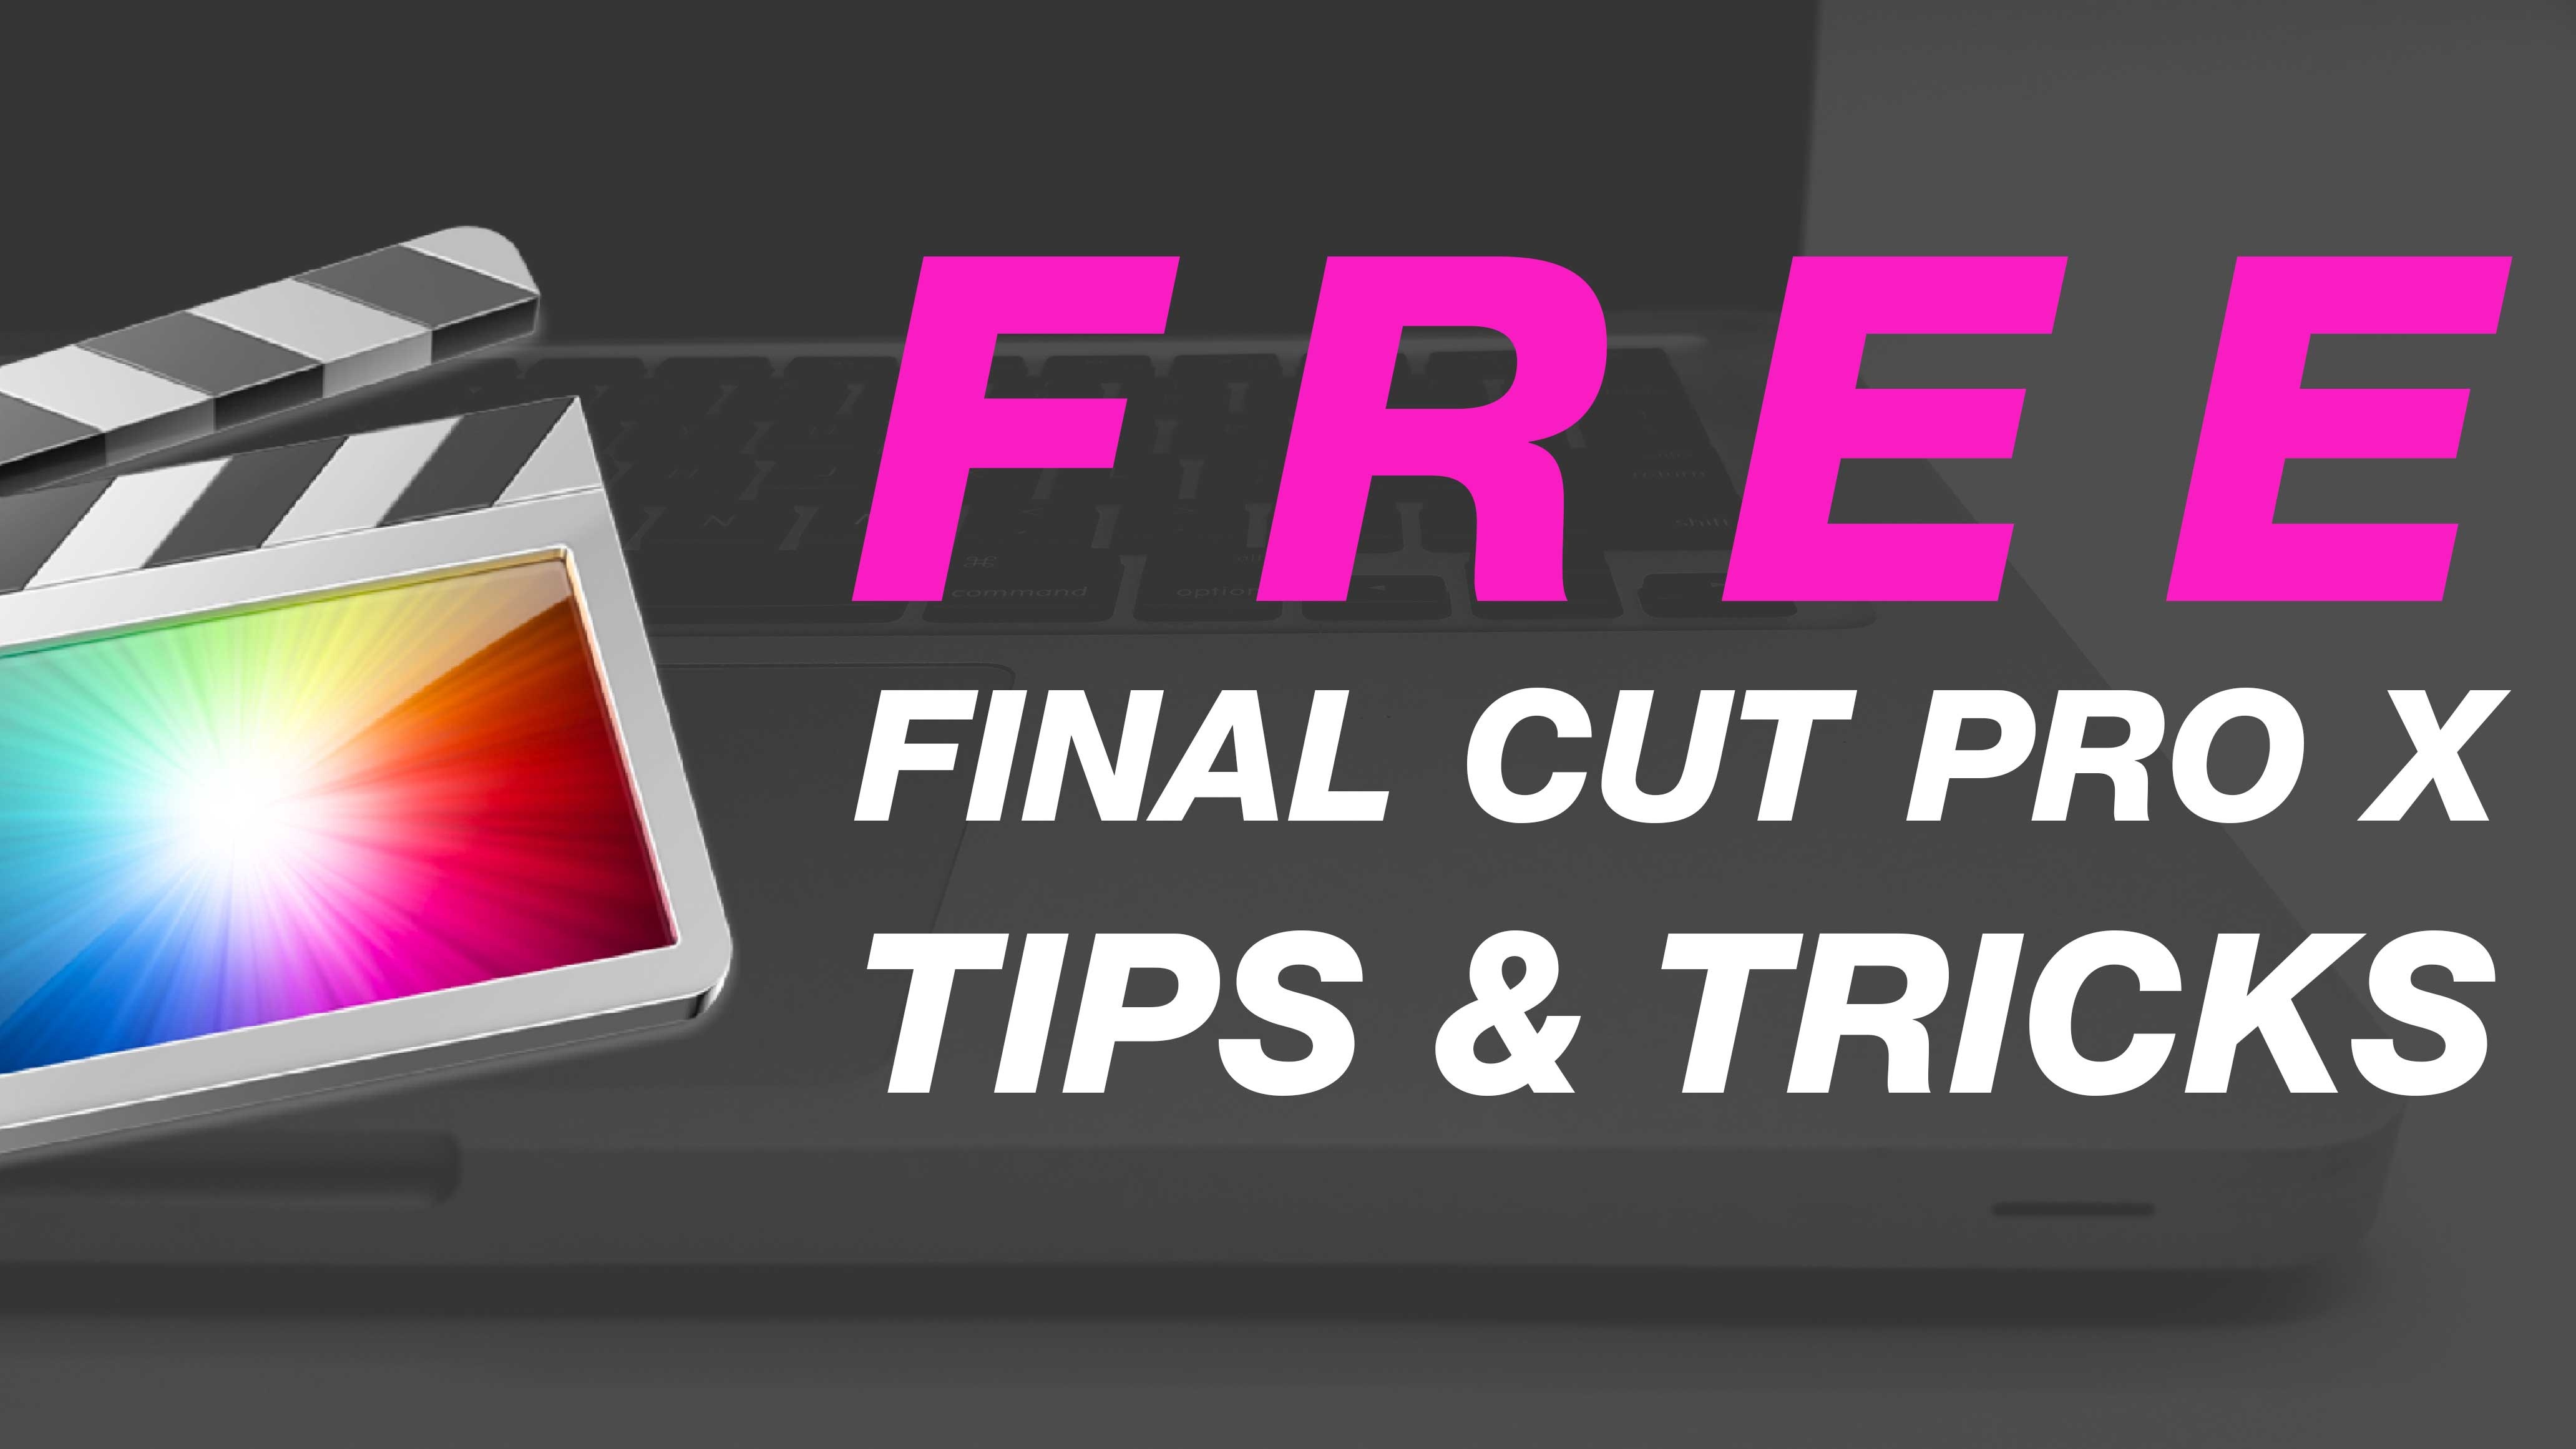 Sign up for free Final Cut Pro Tips & Tricks #fcpx #free